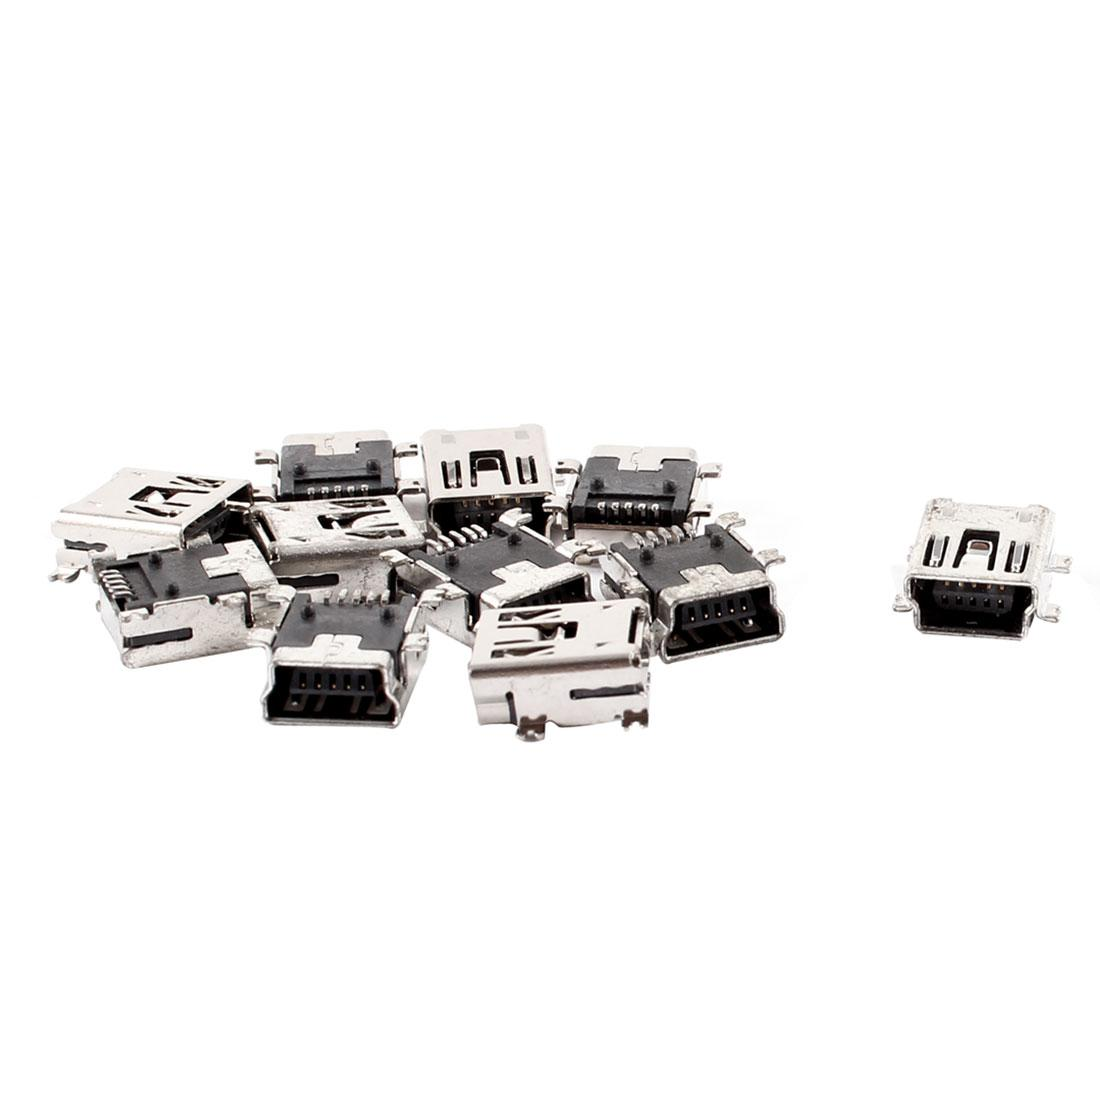 Mini Usb Type B Female 5 Pin Pcb Board Mount Jack Plug Charger Connector From Ux168car 3